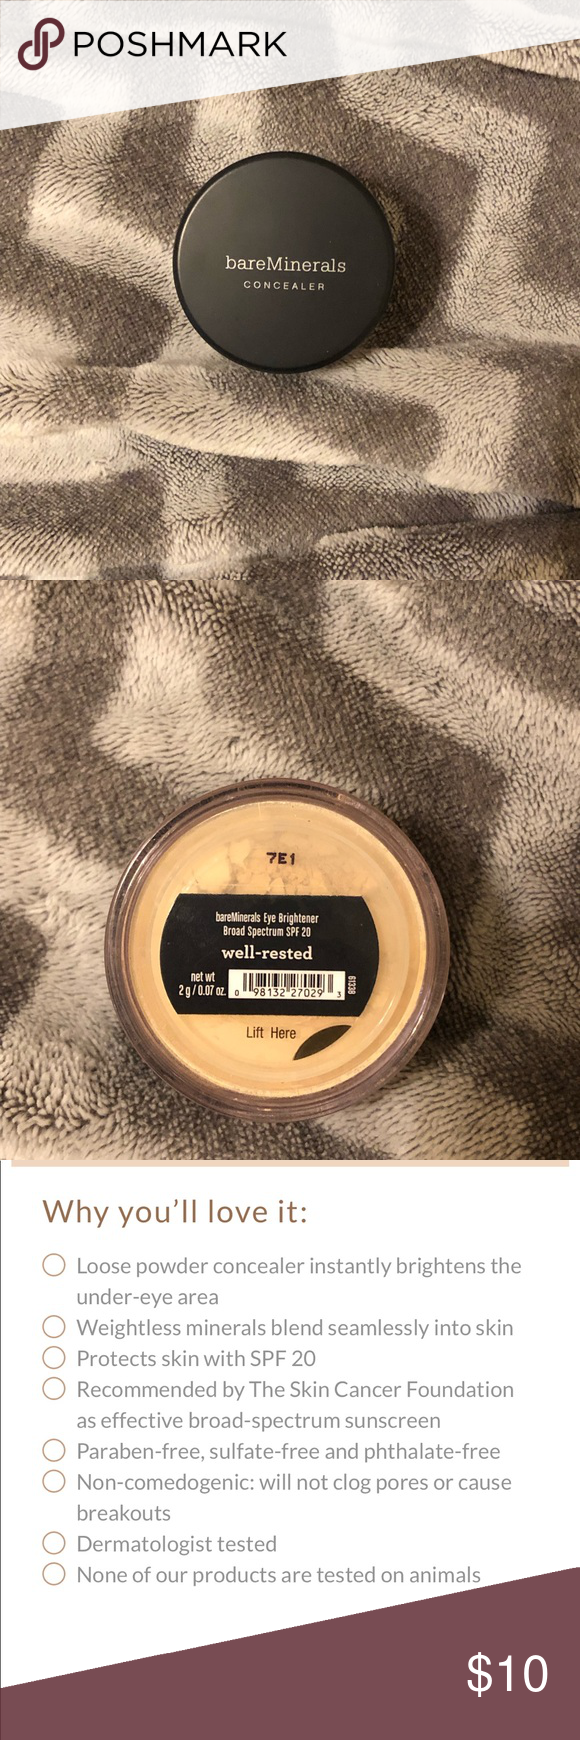 Bareminerals Well Rested Powder Concealer Bareminerals Bare Minerals Concealer Concealer